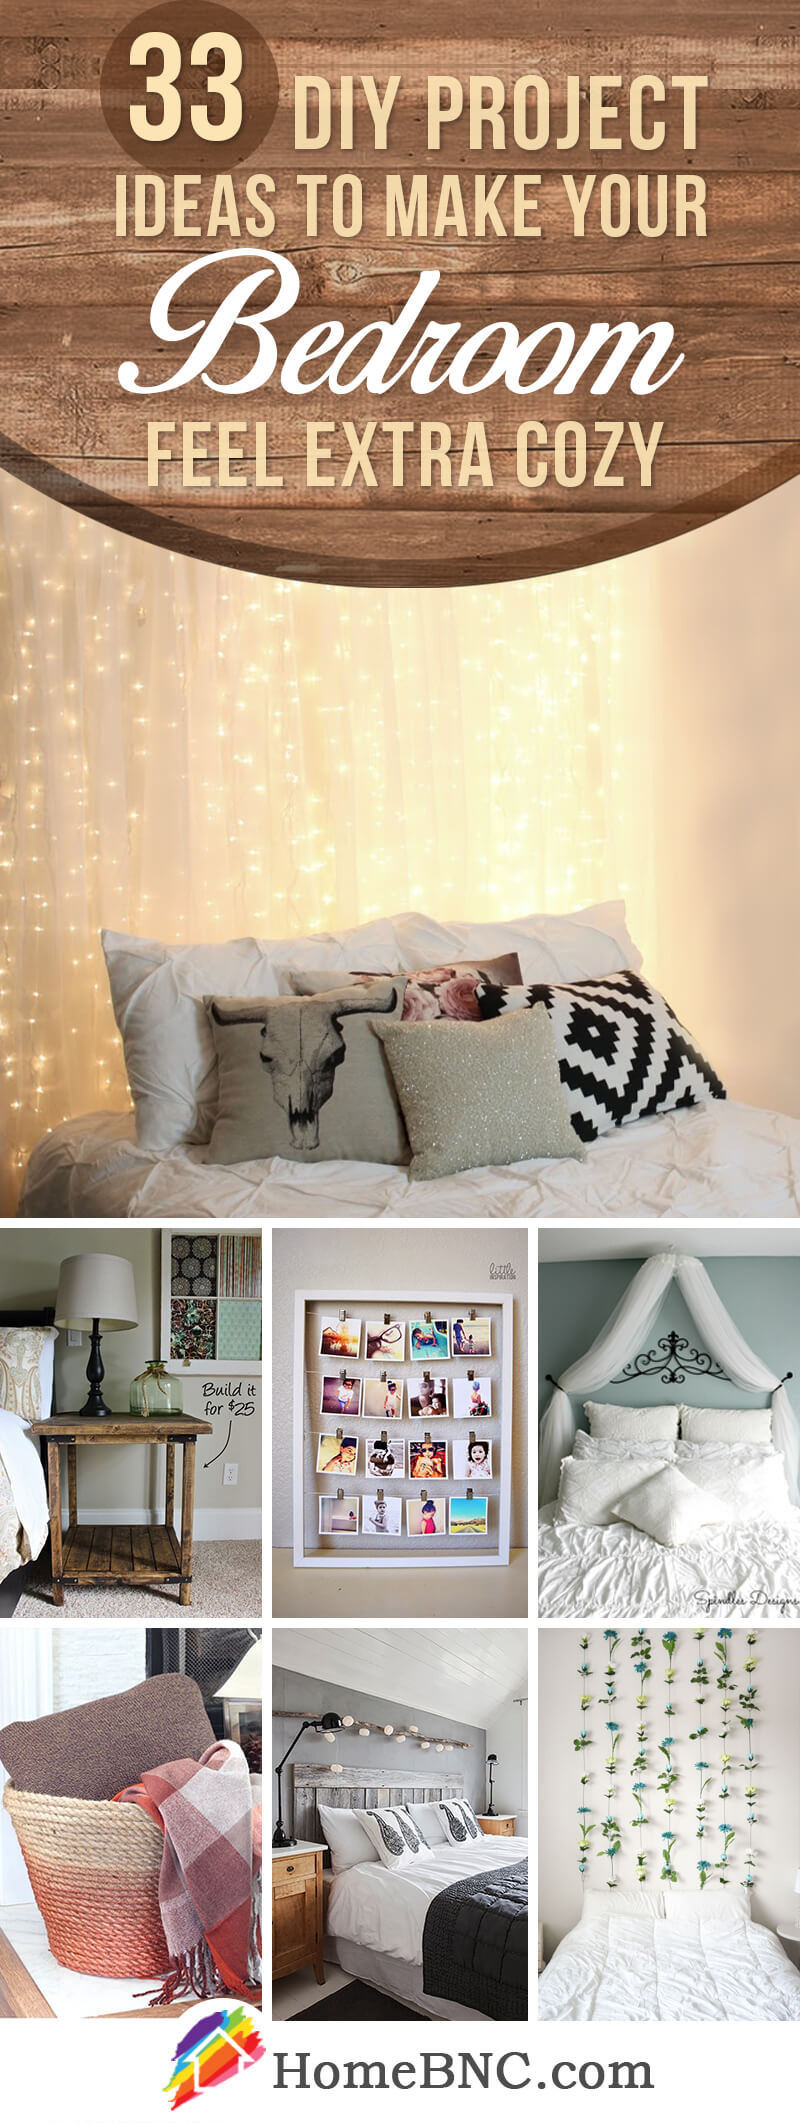 Diy Bedroom Decor It Yourself 33 Best Diy Cozy Bedroom Project Ideas and Designs for 2020